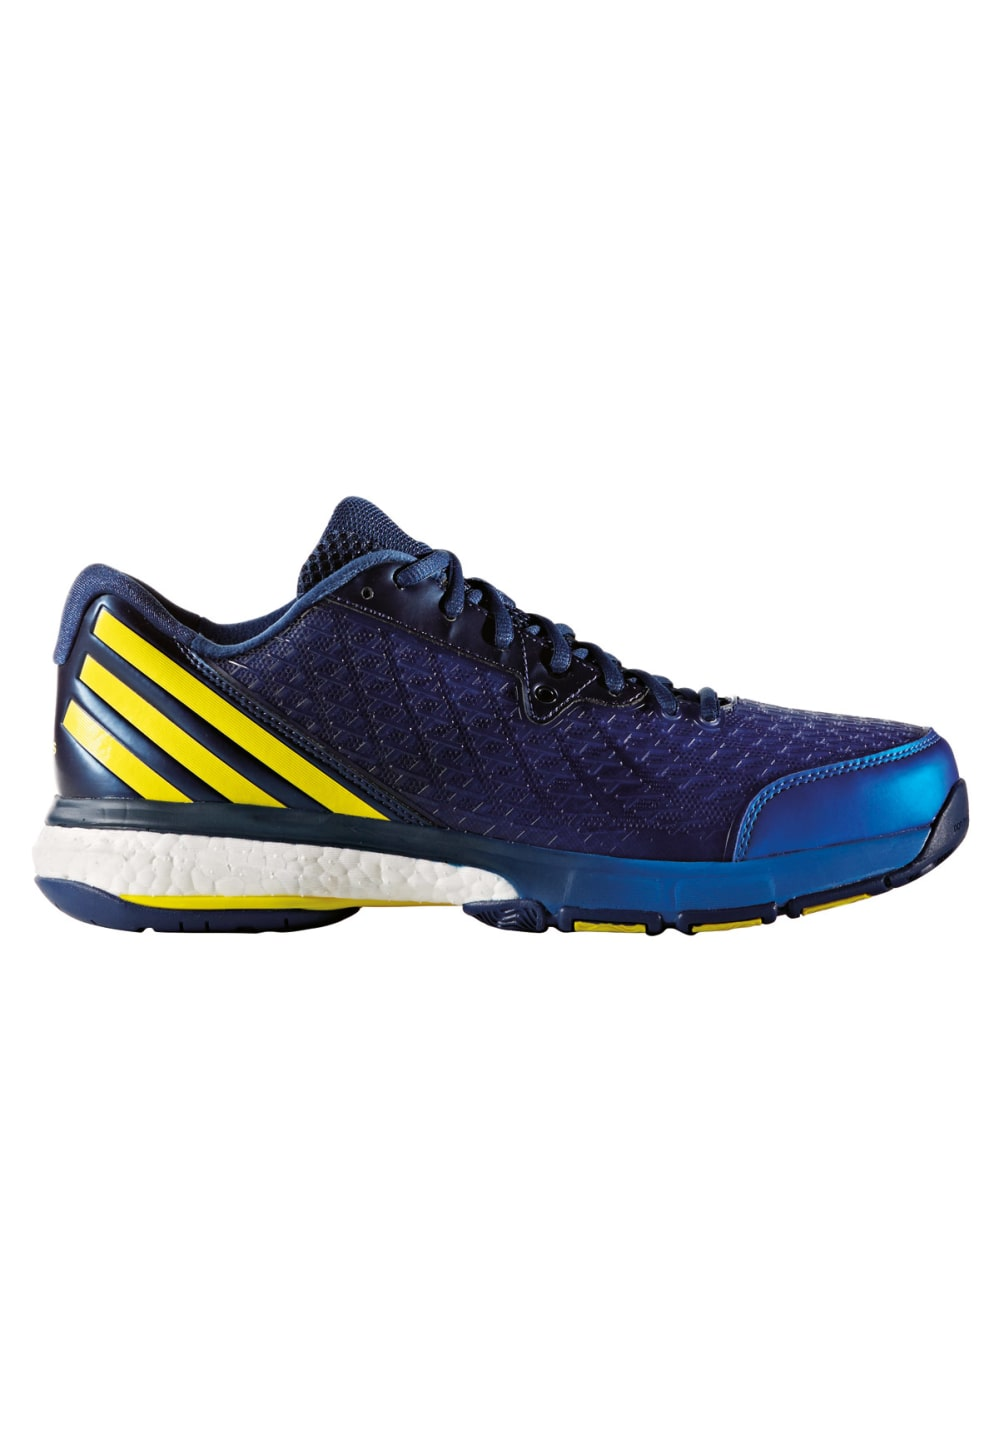 adidas damen volleyballschuhe energy boost 2.0